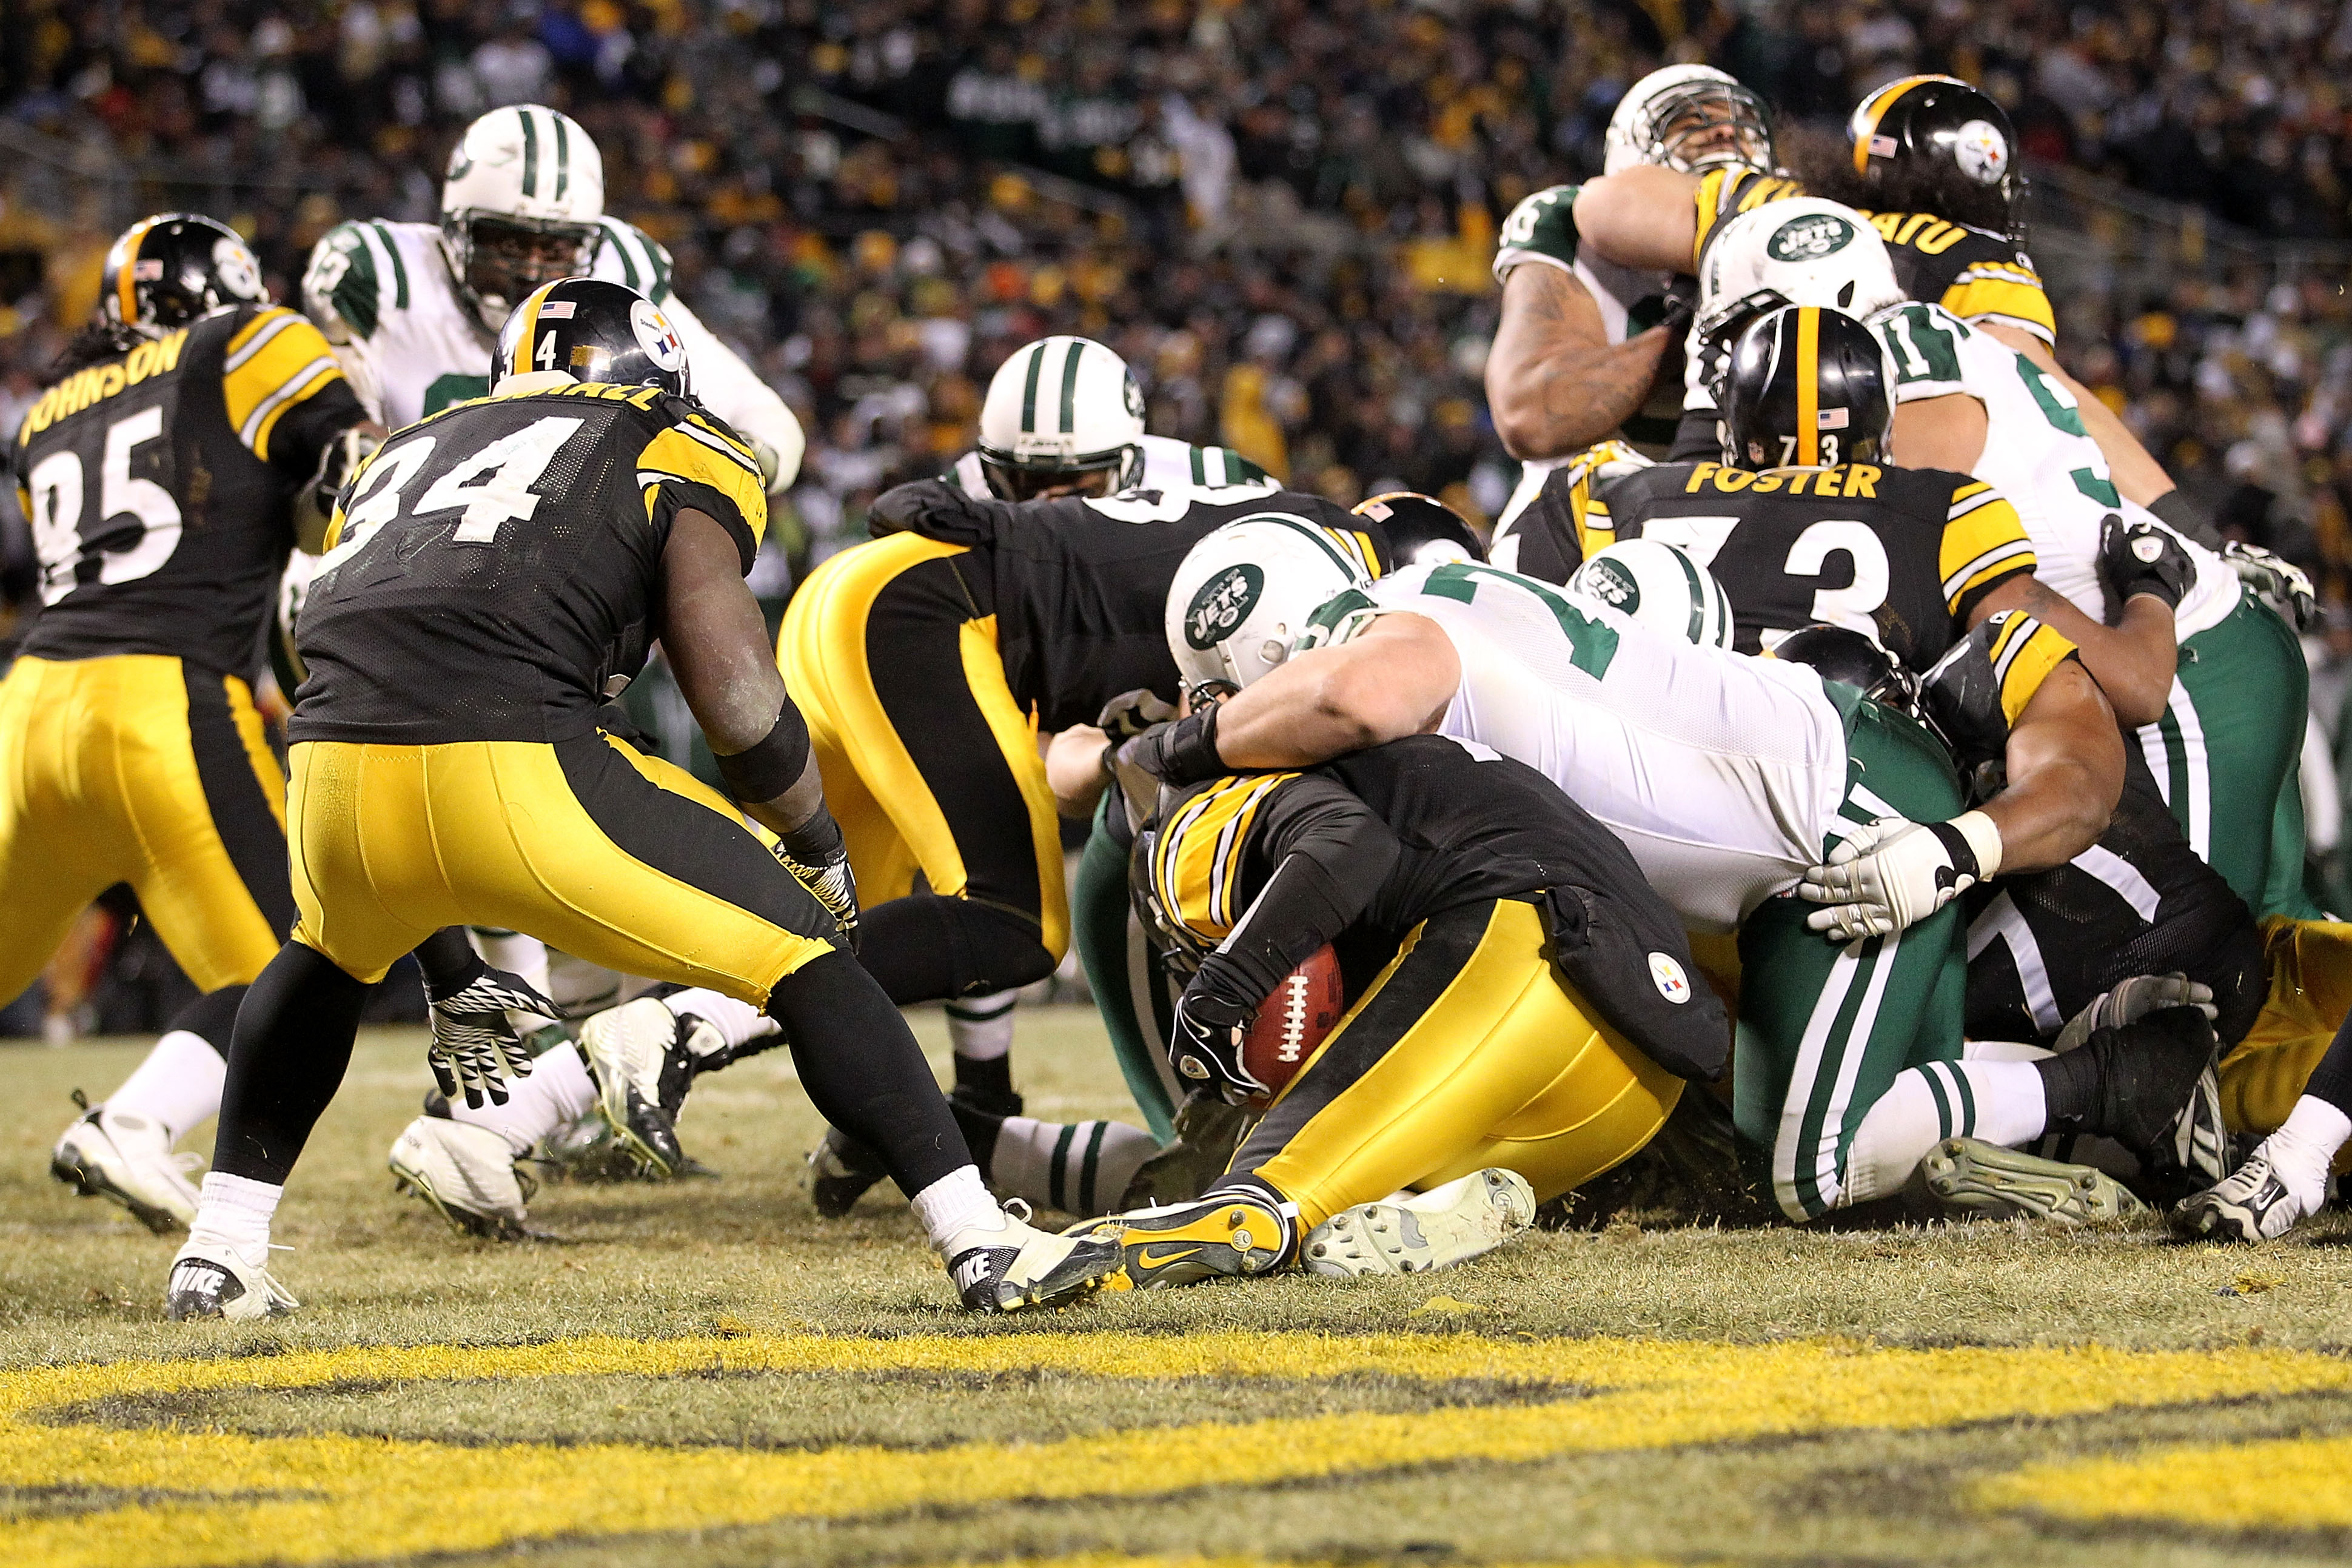 PITTSBURGH, PA - JANUARY 23:  Mike DeVito #70 of the New York Jets brings down Ben Roethlisberger #7 of the Pittsburgh Steelers for a fourth quarter safety during the 2011 AFC Championship game at Heinz Field on January 23, 2011 in Pittsburgh, Pennsylvani